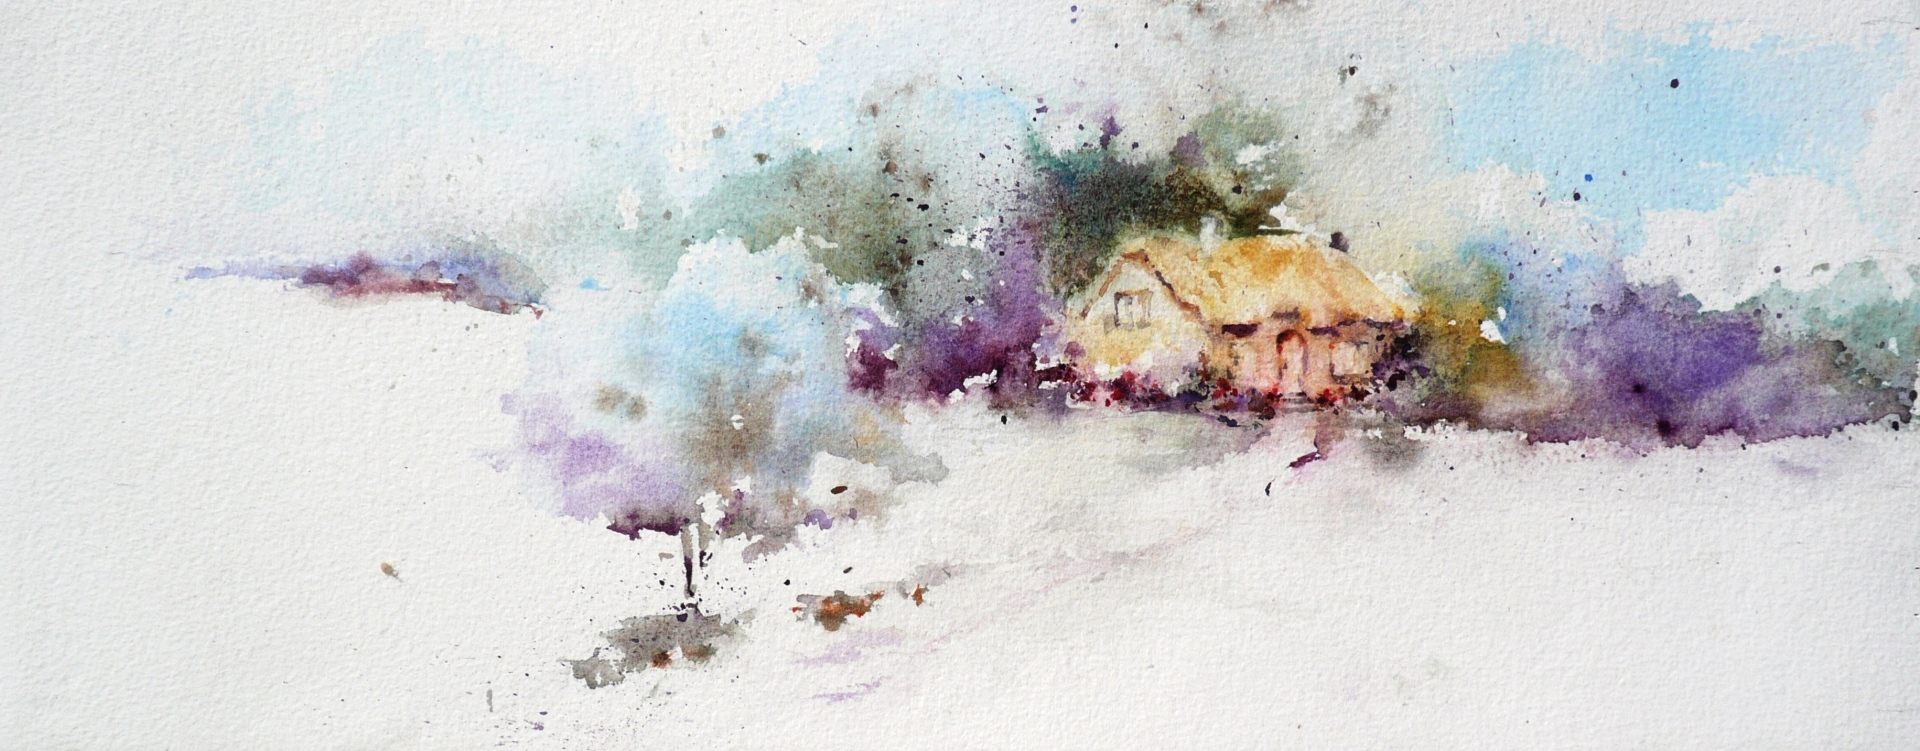 watercolor painting of a far off cottage tucked into a woods of leafless trees in winter